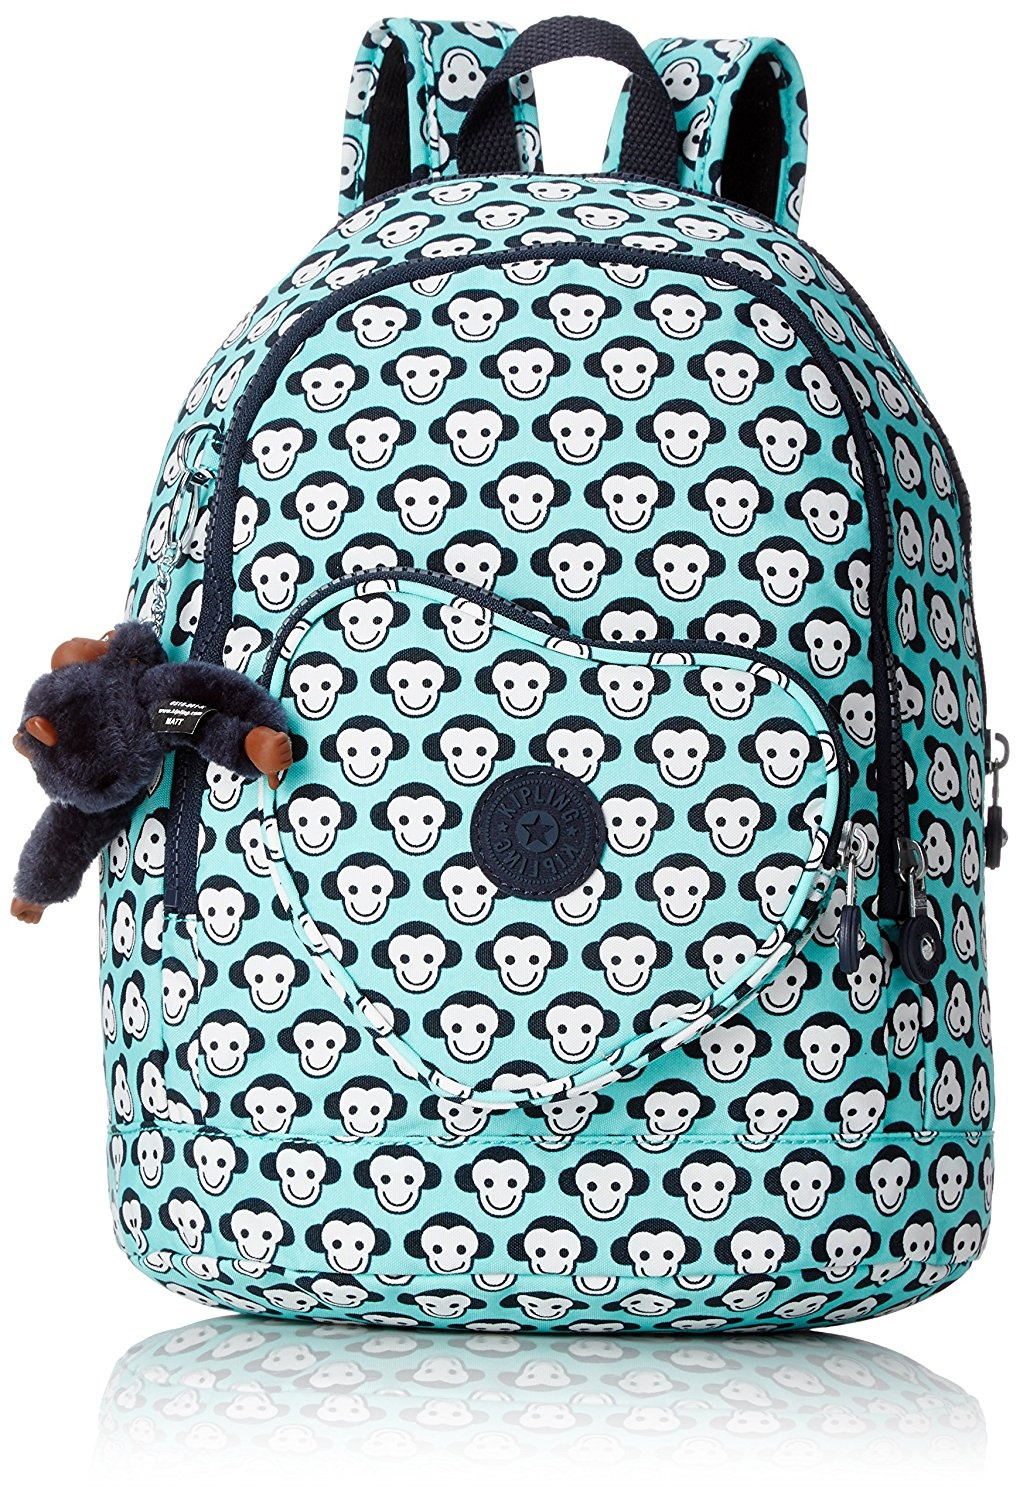 ae72d07aa8 Kipling - HEART BACKPACK - Kids Backpack - Toddlermonkey G - (Print ...